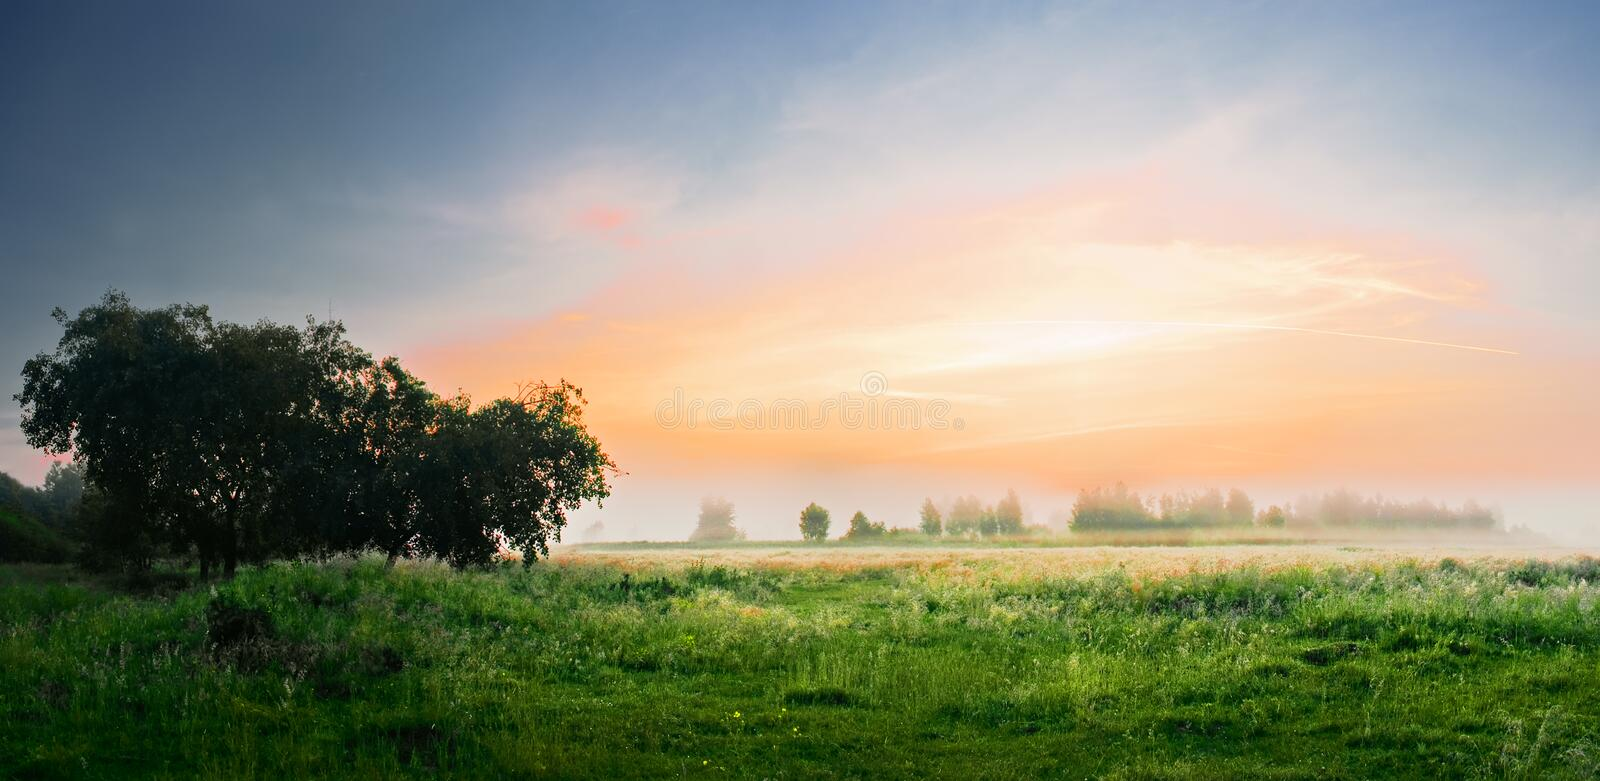 Download Dawn in a field stock image. Image of summertime, countryside - 28702007